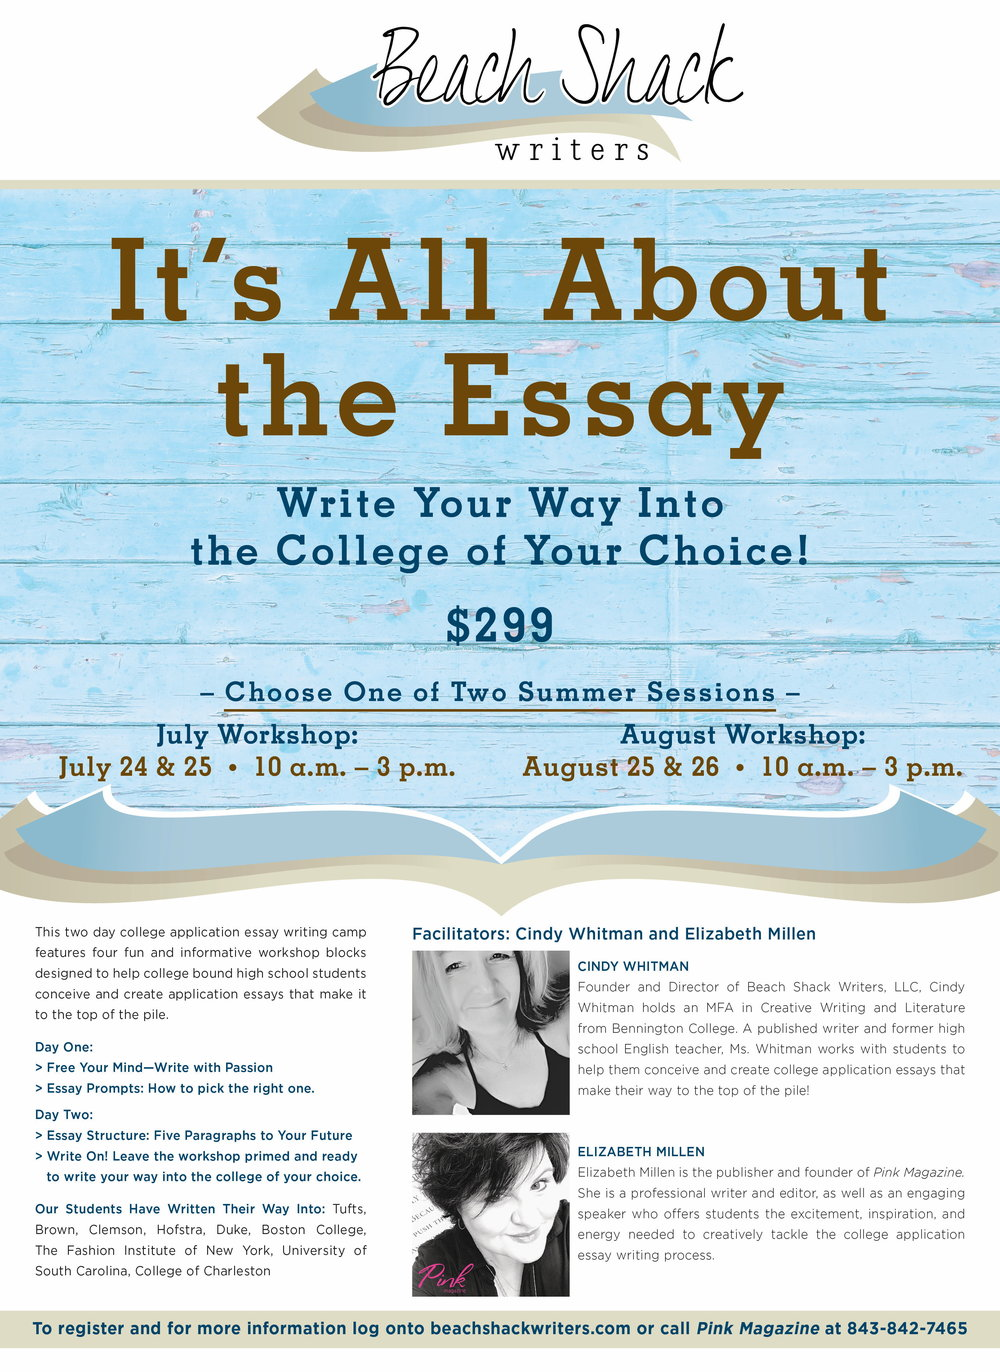 personal passions essay Along with the essay, most colleges rate character and personal qualities as extremely important in their admissions decisions your character shows up in three places on the application: the interview (if you have one), your involvement in extracurricular activities , and your essay.